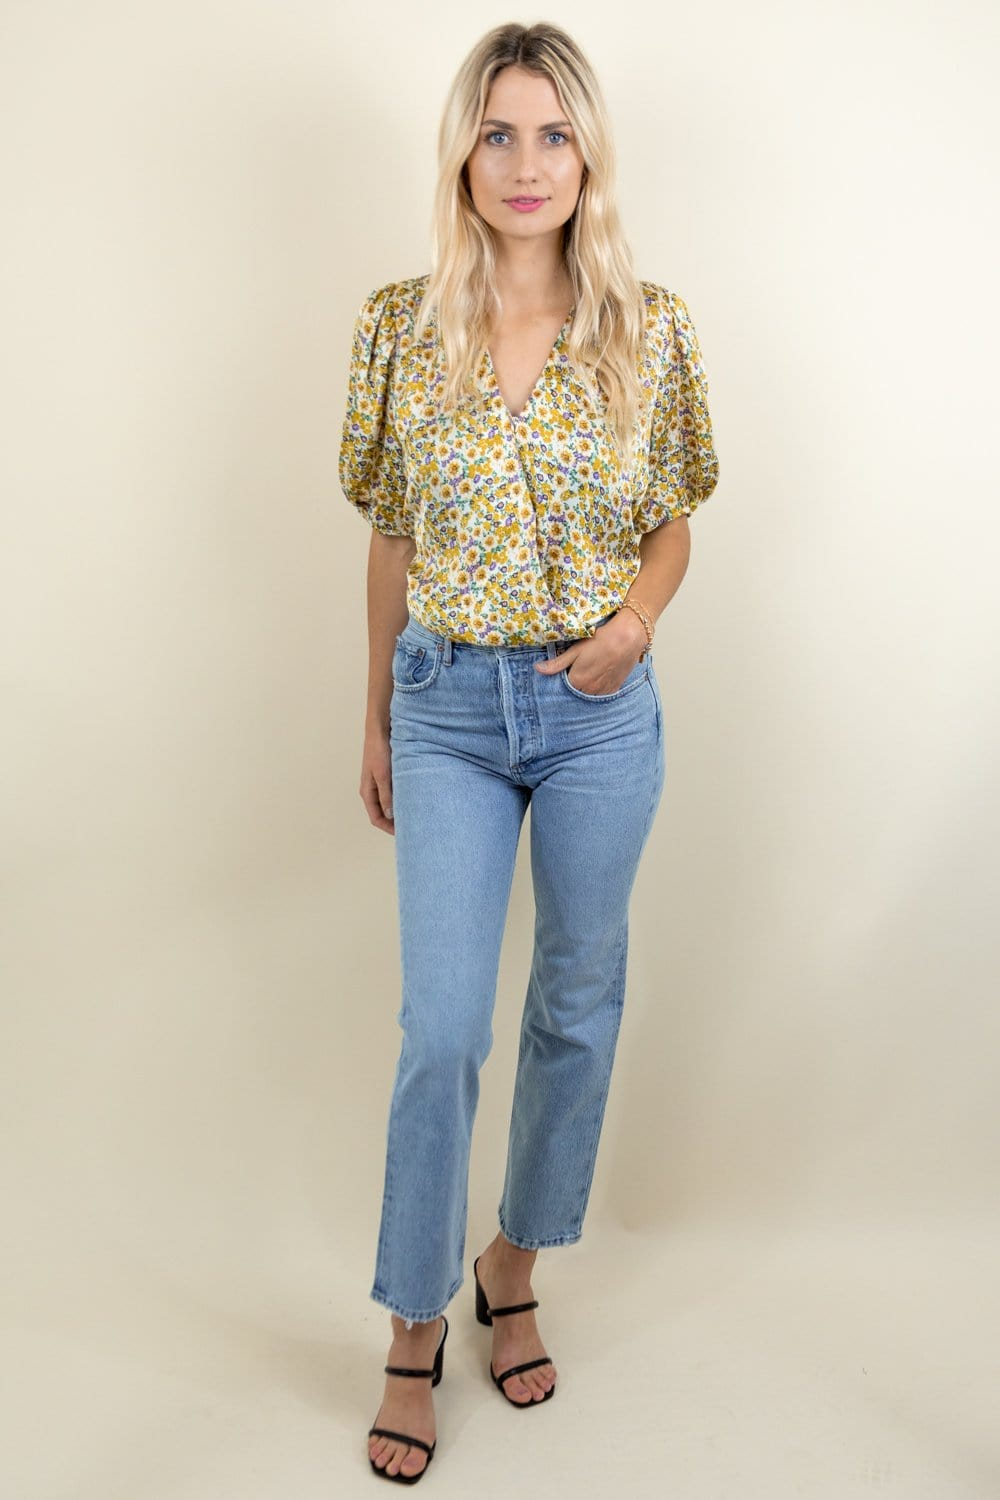 Heartloom Julia Top | Wild Dove Boutique